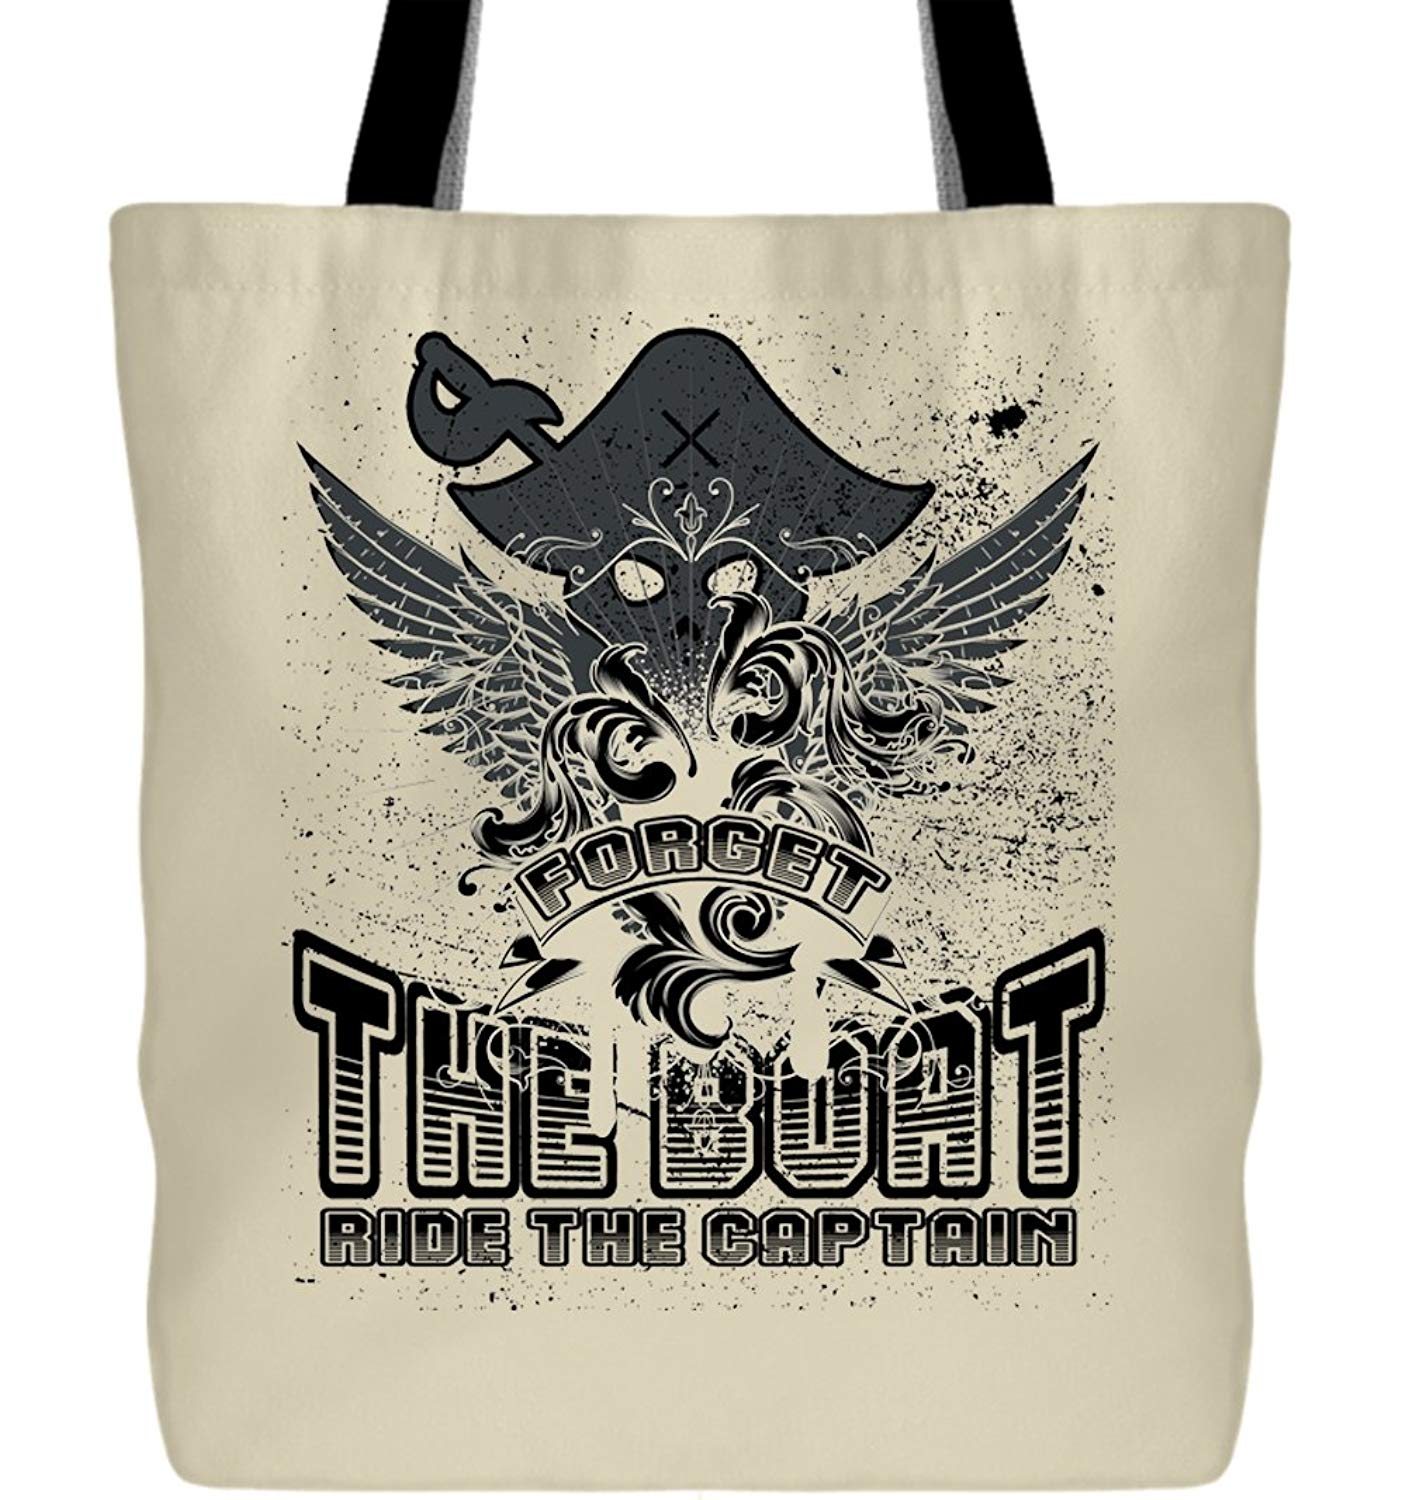 62454618b9be Buy Im A Captain Canvas Tote Bags